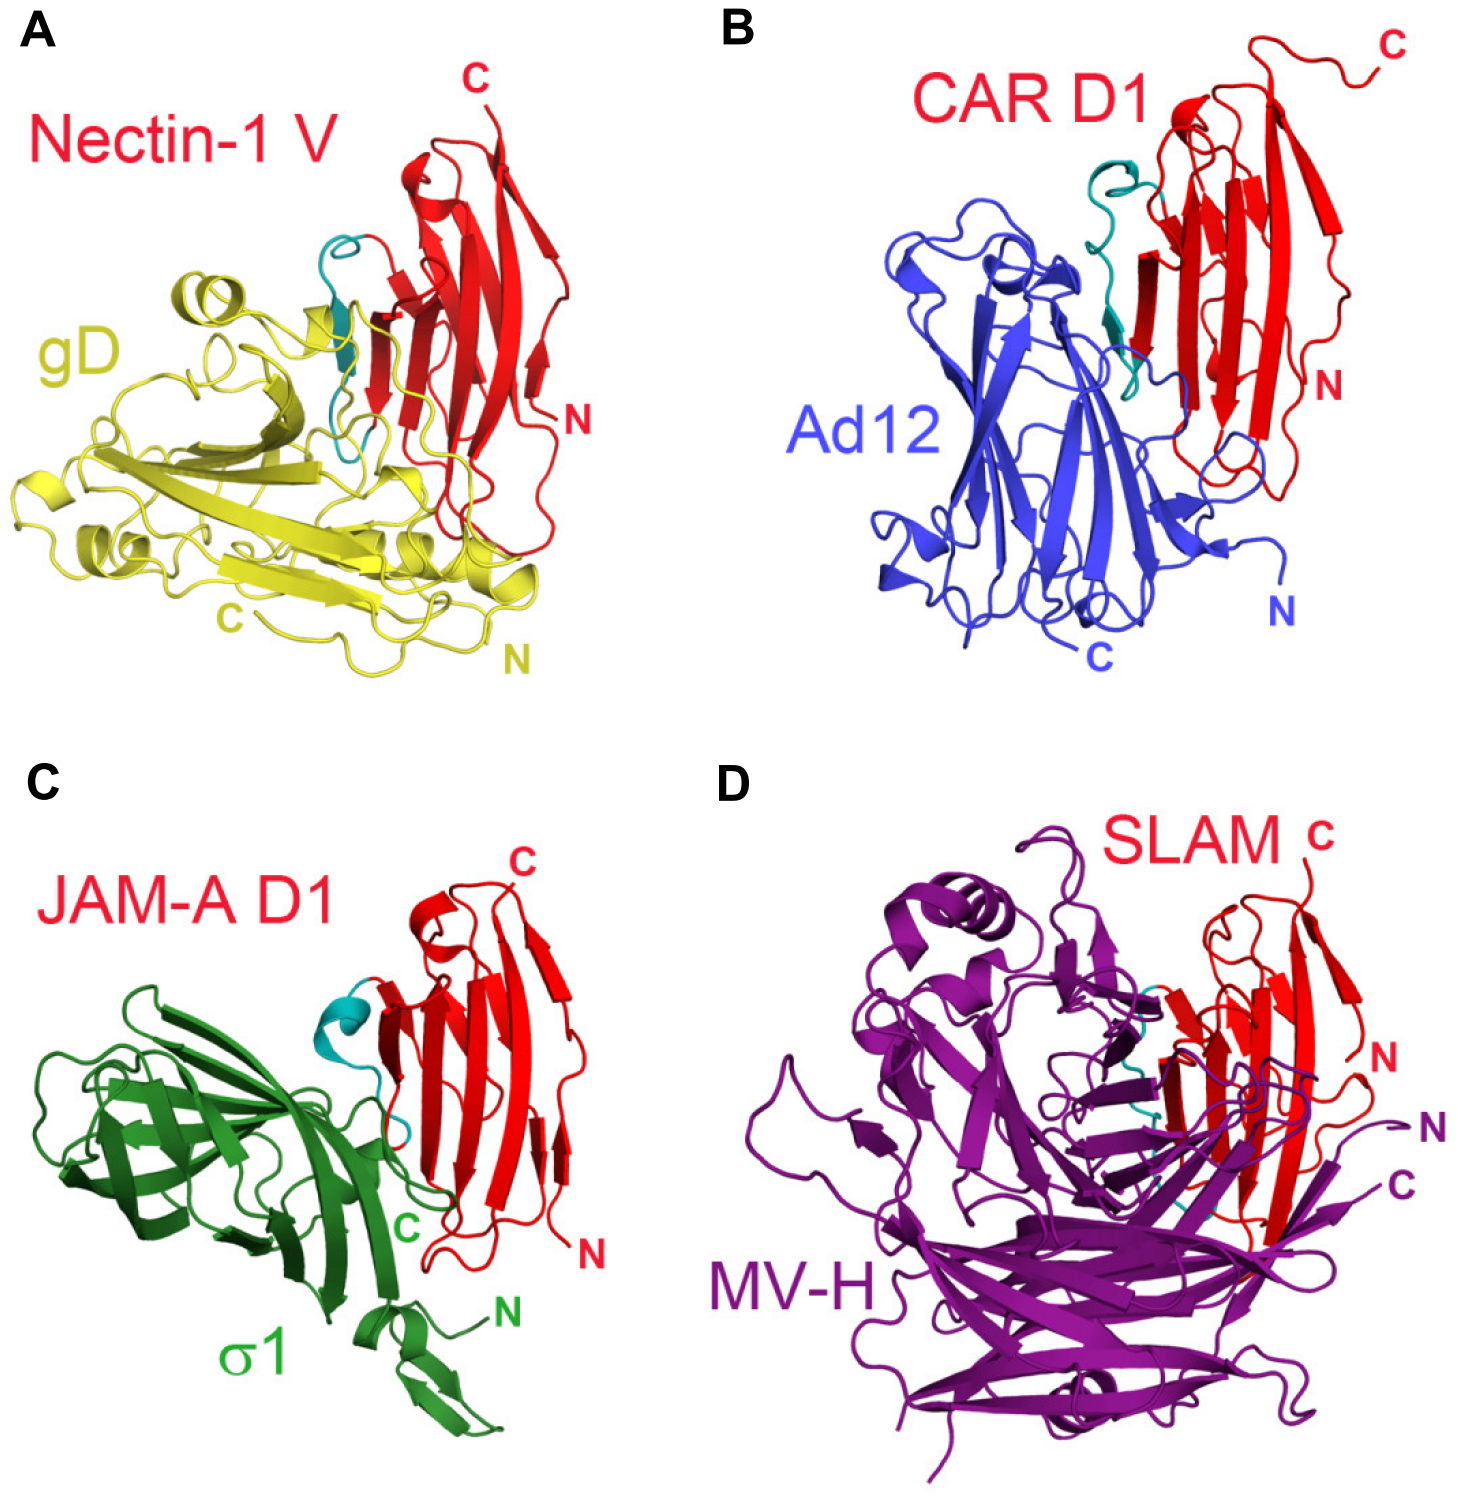 Similarities in the interactions between adhesion molecules with Ig-like fold and viral receptor-binding proteins.